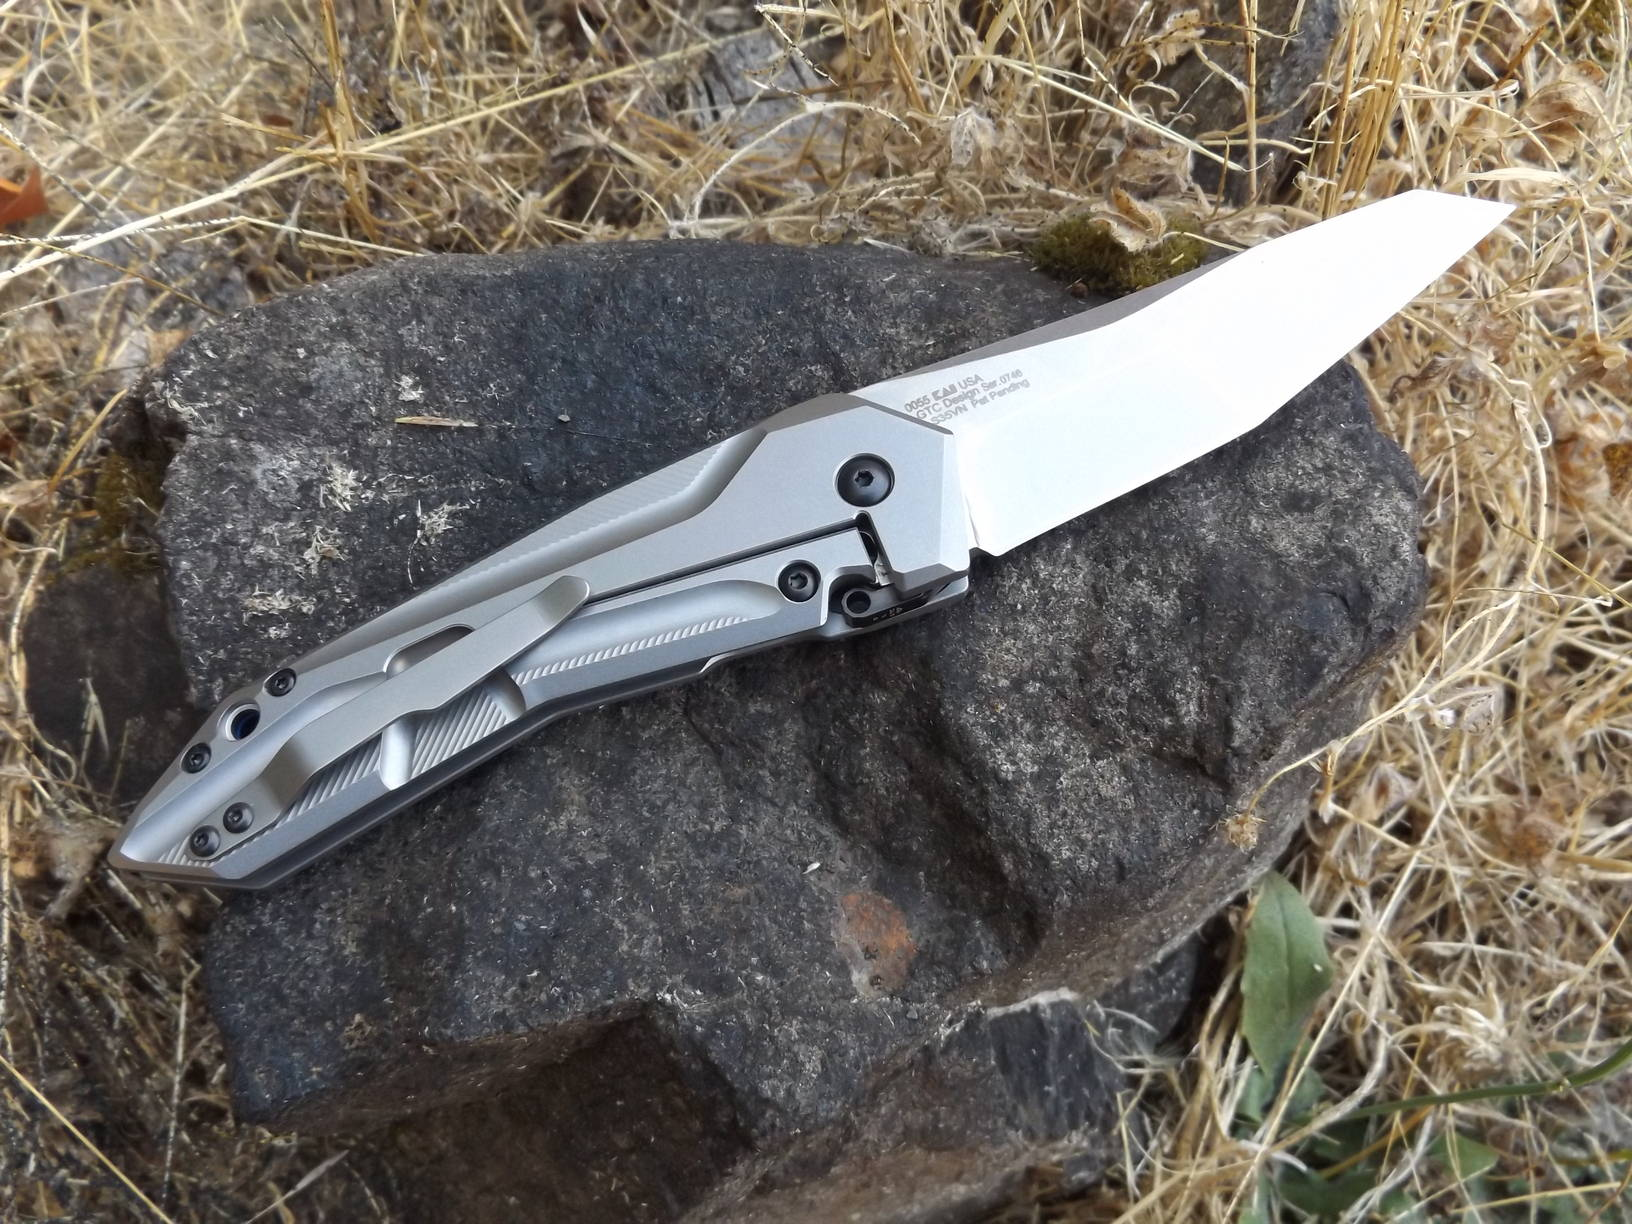 Zero Tolerance 0055, by Pat Cascio